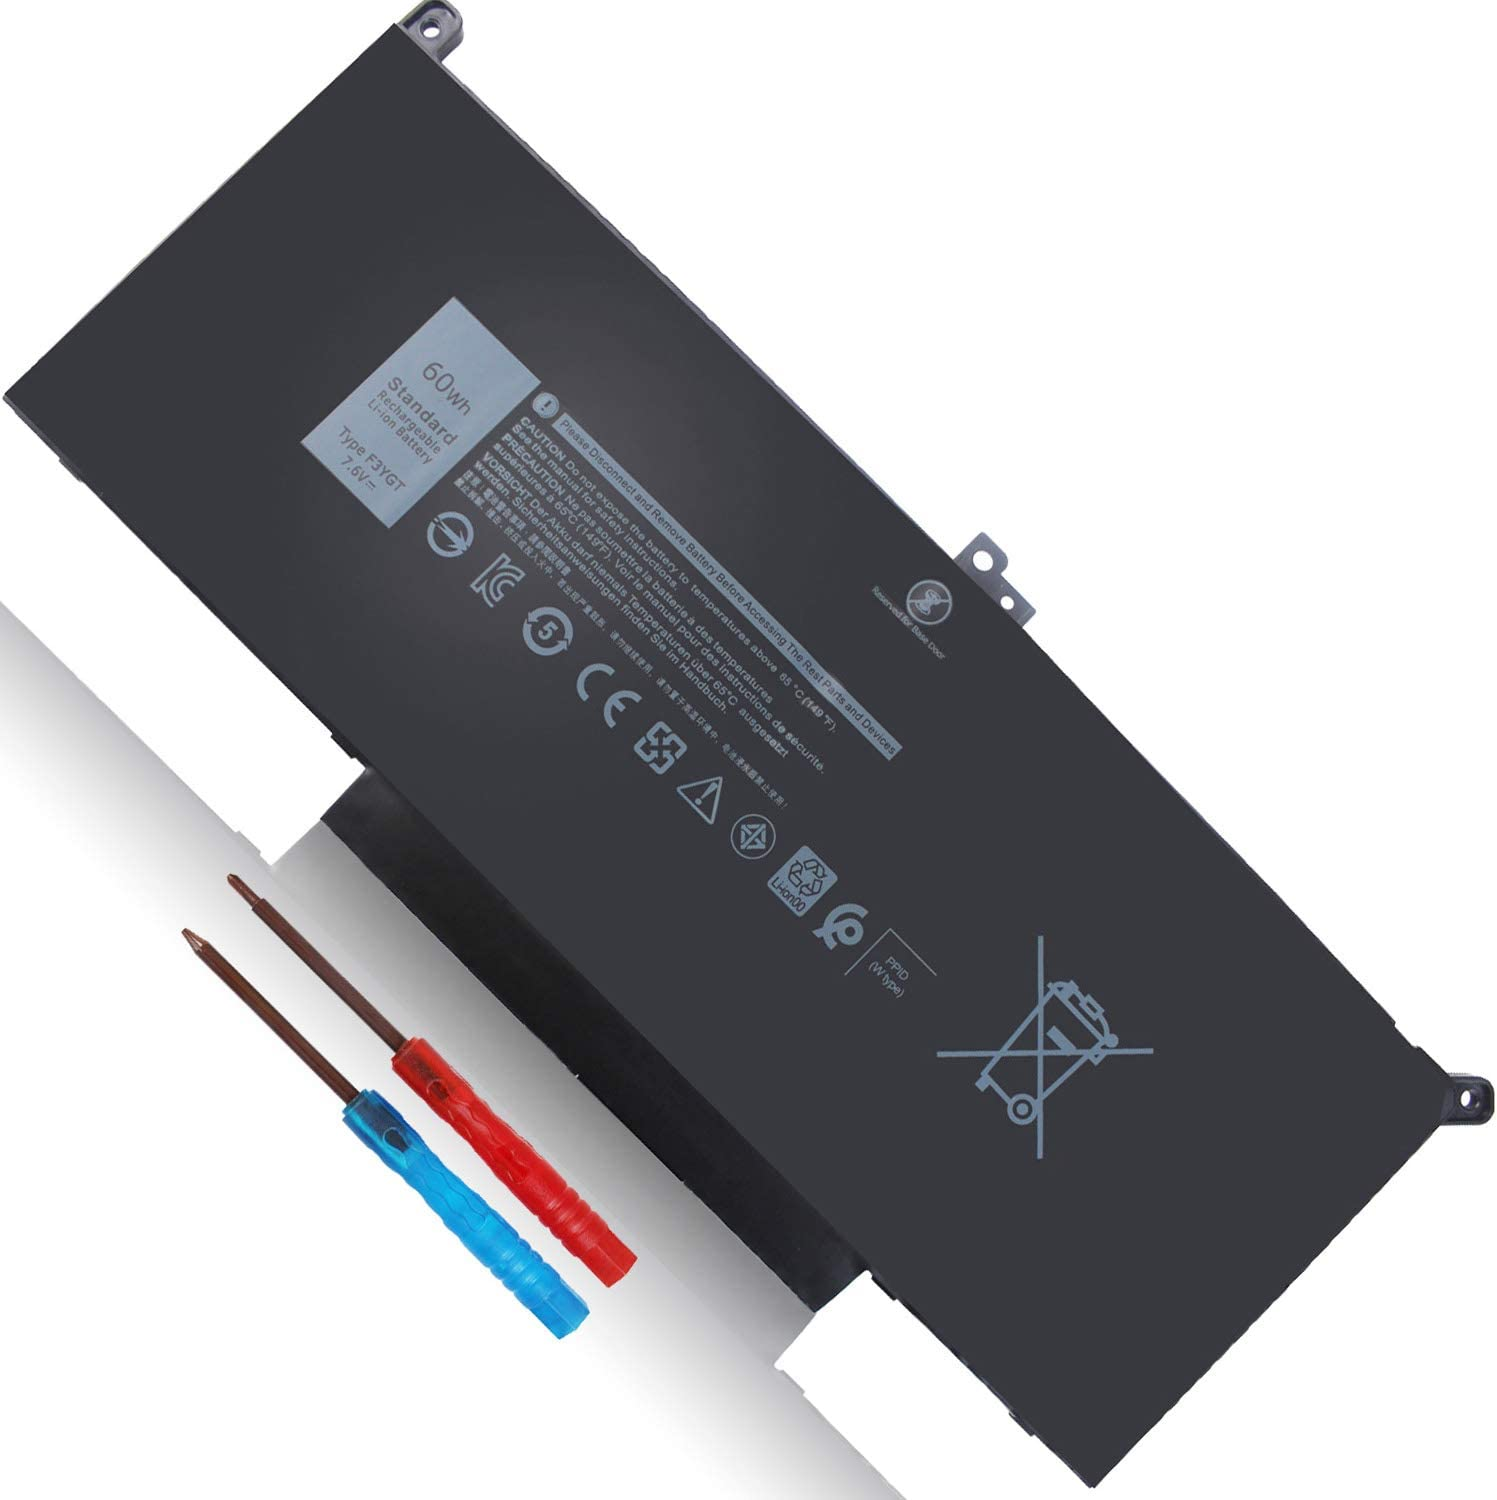 60Wh Type F3YGT DM3WC Battery Replacement for Dell Latitude 7480 7490 7280 7290 7380 7390 2X39G DM6WC 451-BBYE 453-BBCF KG7VF P73G001 P73G002 P28S001 P28S002 P28S P73G 7.6V 4-Cell